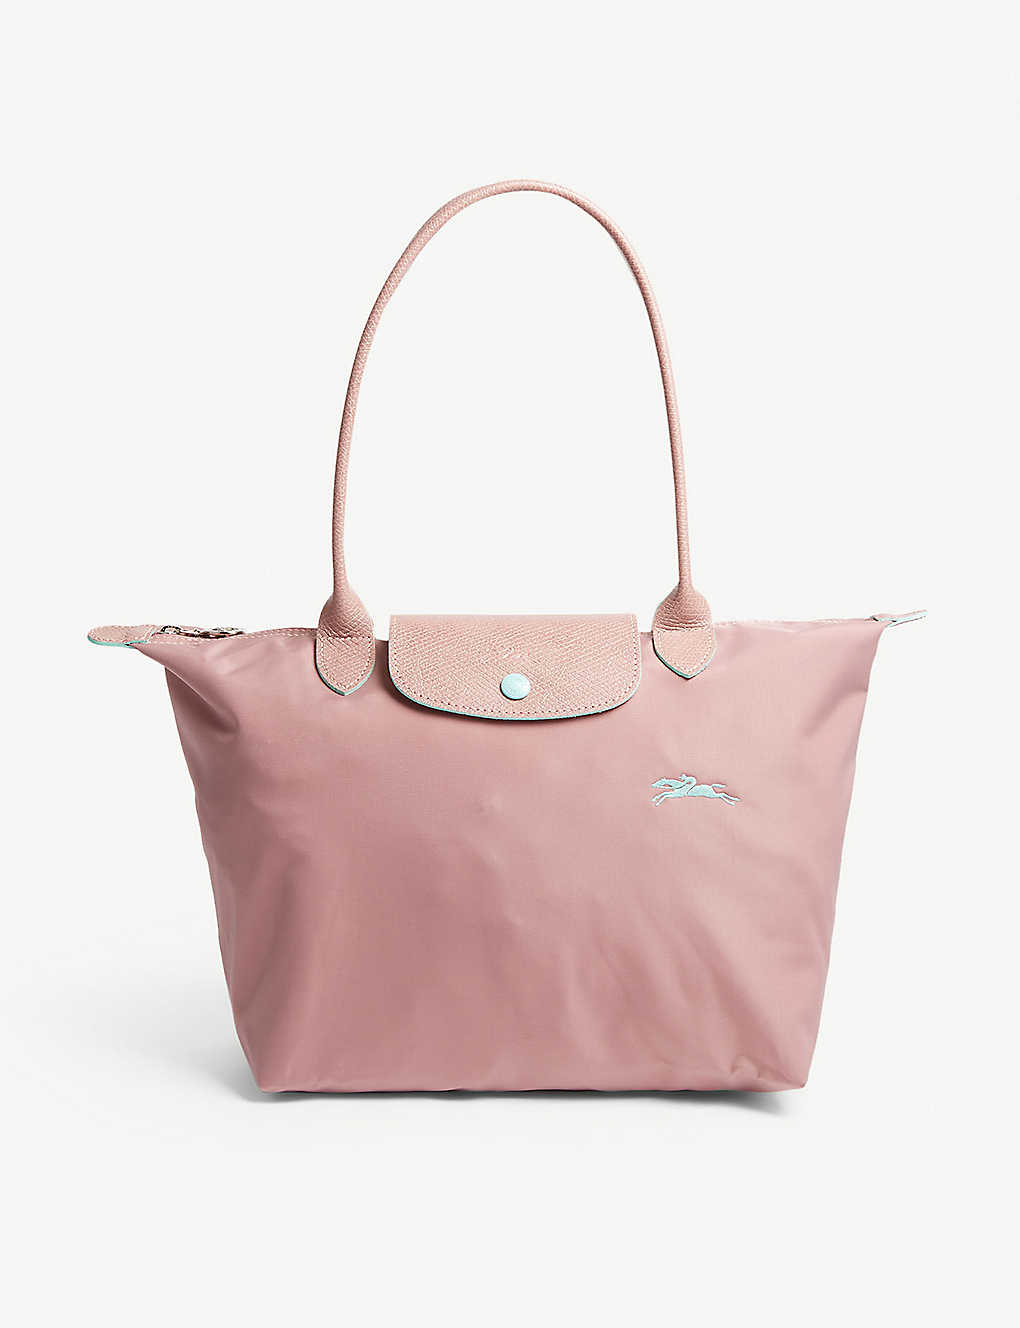 1c3c87c8c97 LONGCHAMP - Le Pliage Club small tote